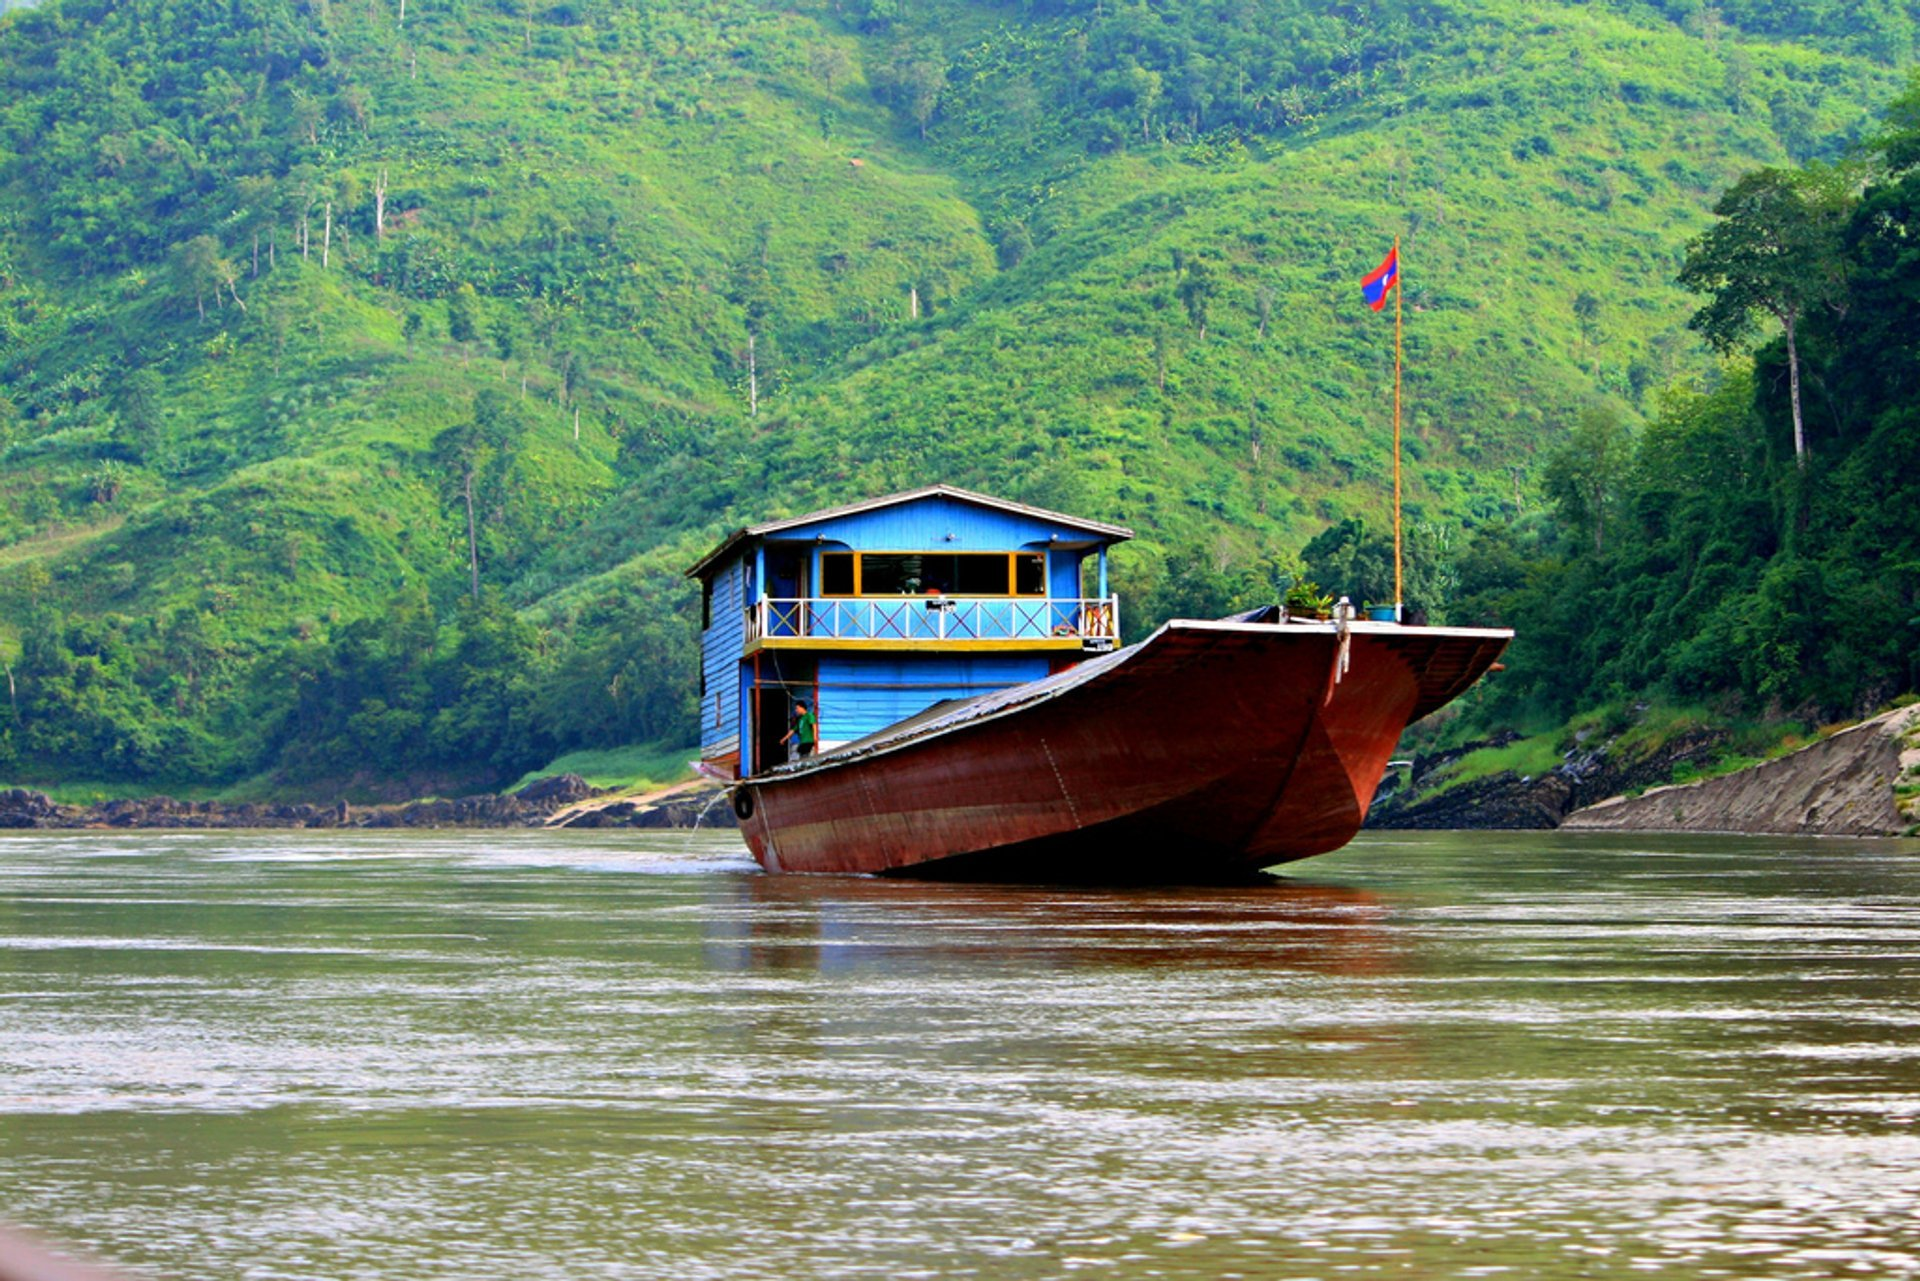 Slow Boat on the Mekong River in Laos 2019 - Best Time